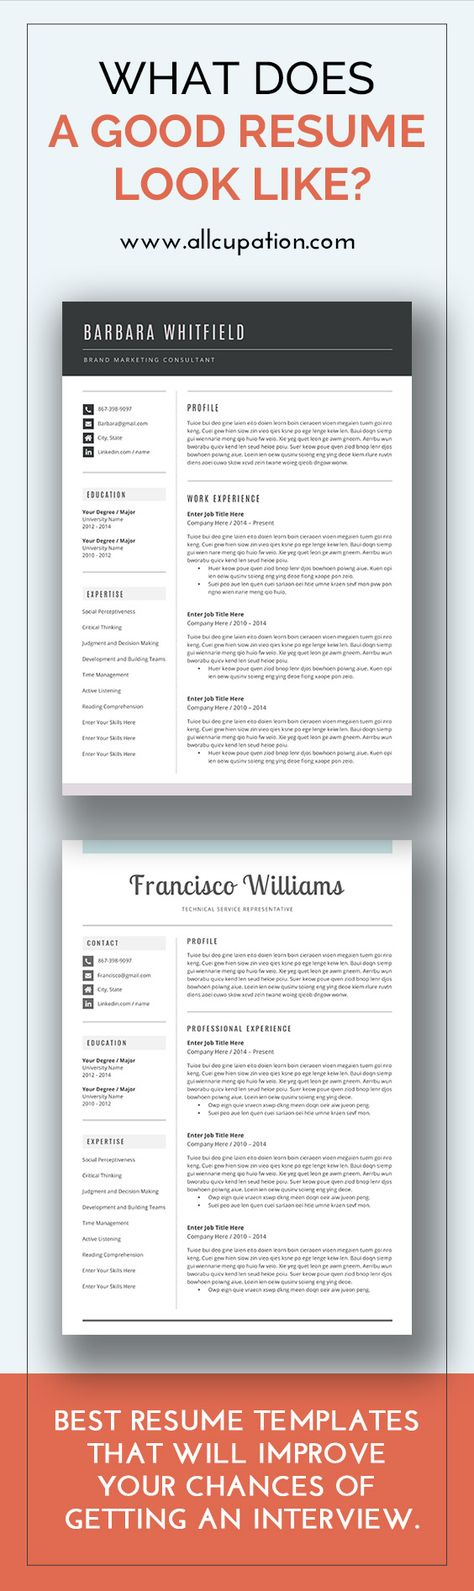 Best resume templates for your job search Visit wwwallcupation - what does a good resume look like